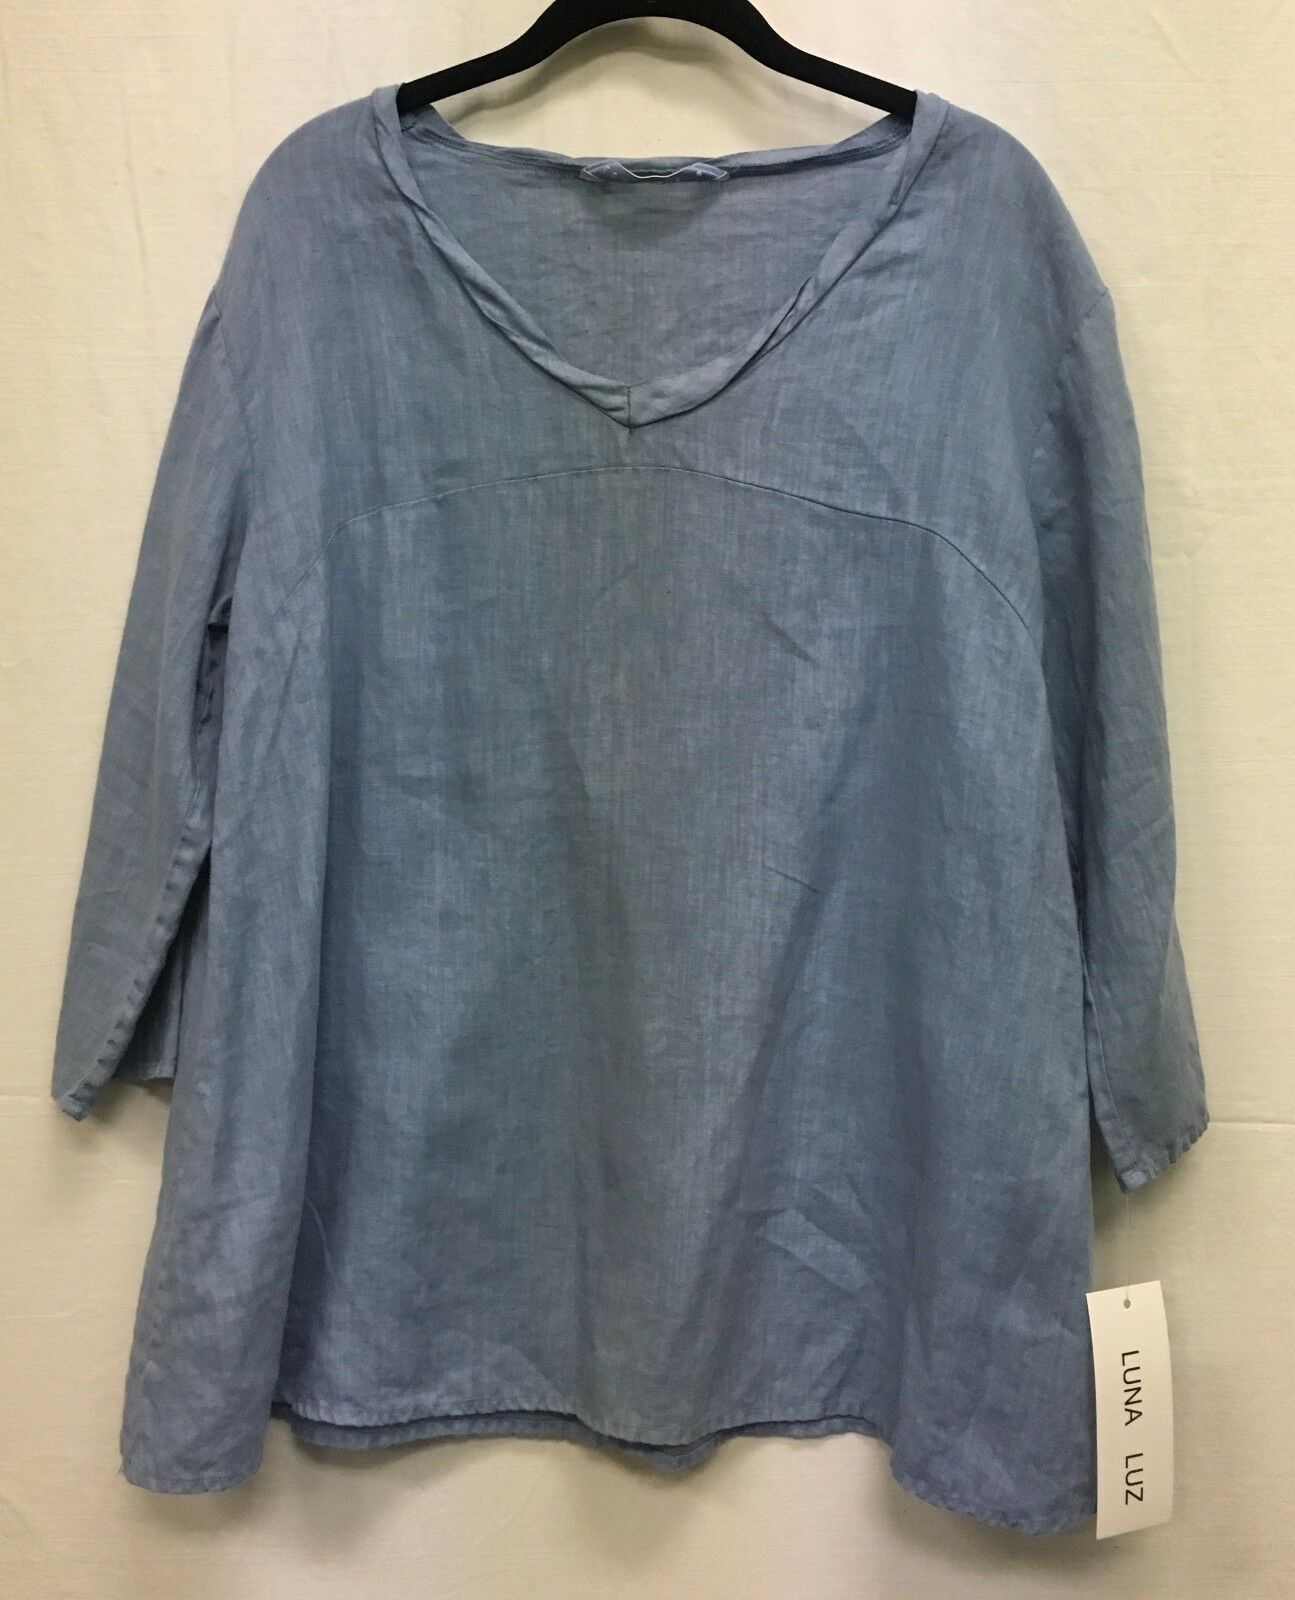 Luna Luz Linen V Neck Peasant Tunic Shirt 3 4 Sleeves Style 707 NEW with Tags